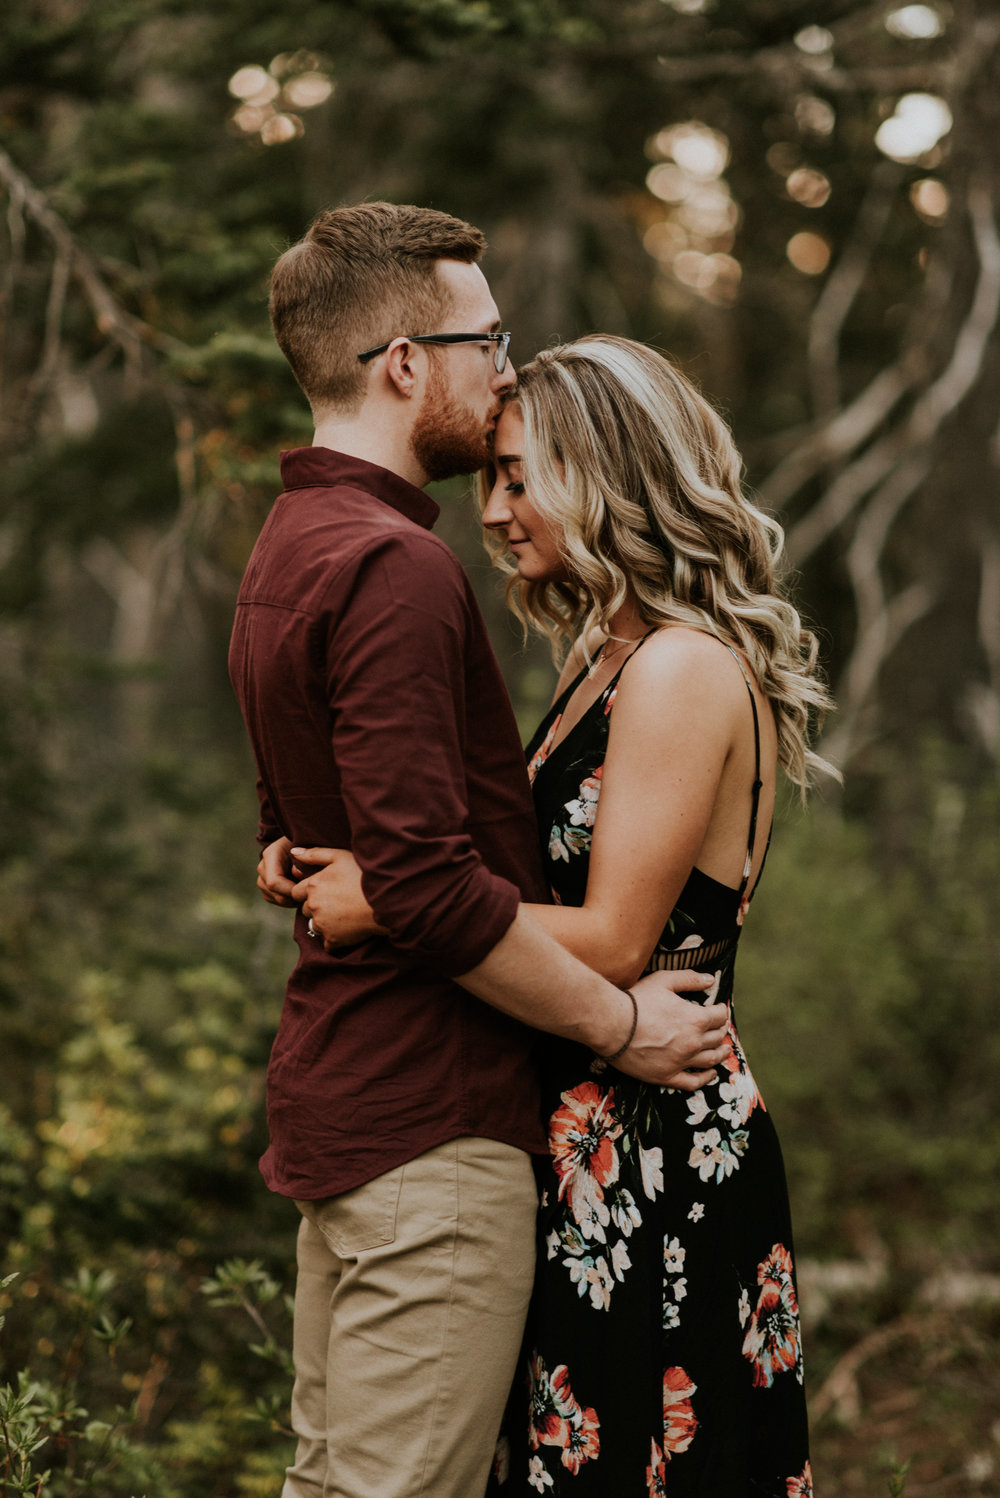 Amelia + Brendon - Olympic National Park Engagement Session - Olympic National Forest Wedding Photographer - Hurricane Ridge Elopement Photographer - Seattle Elopement Photographer